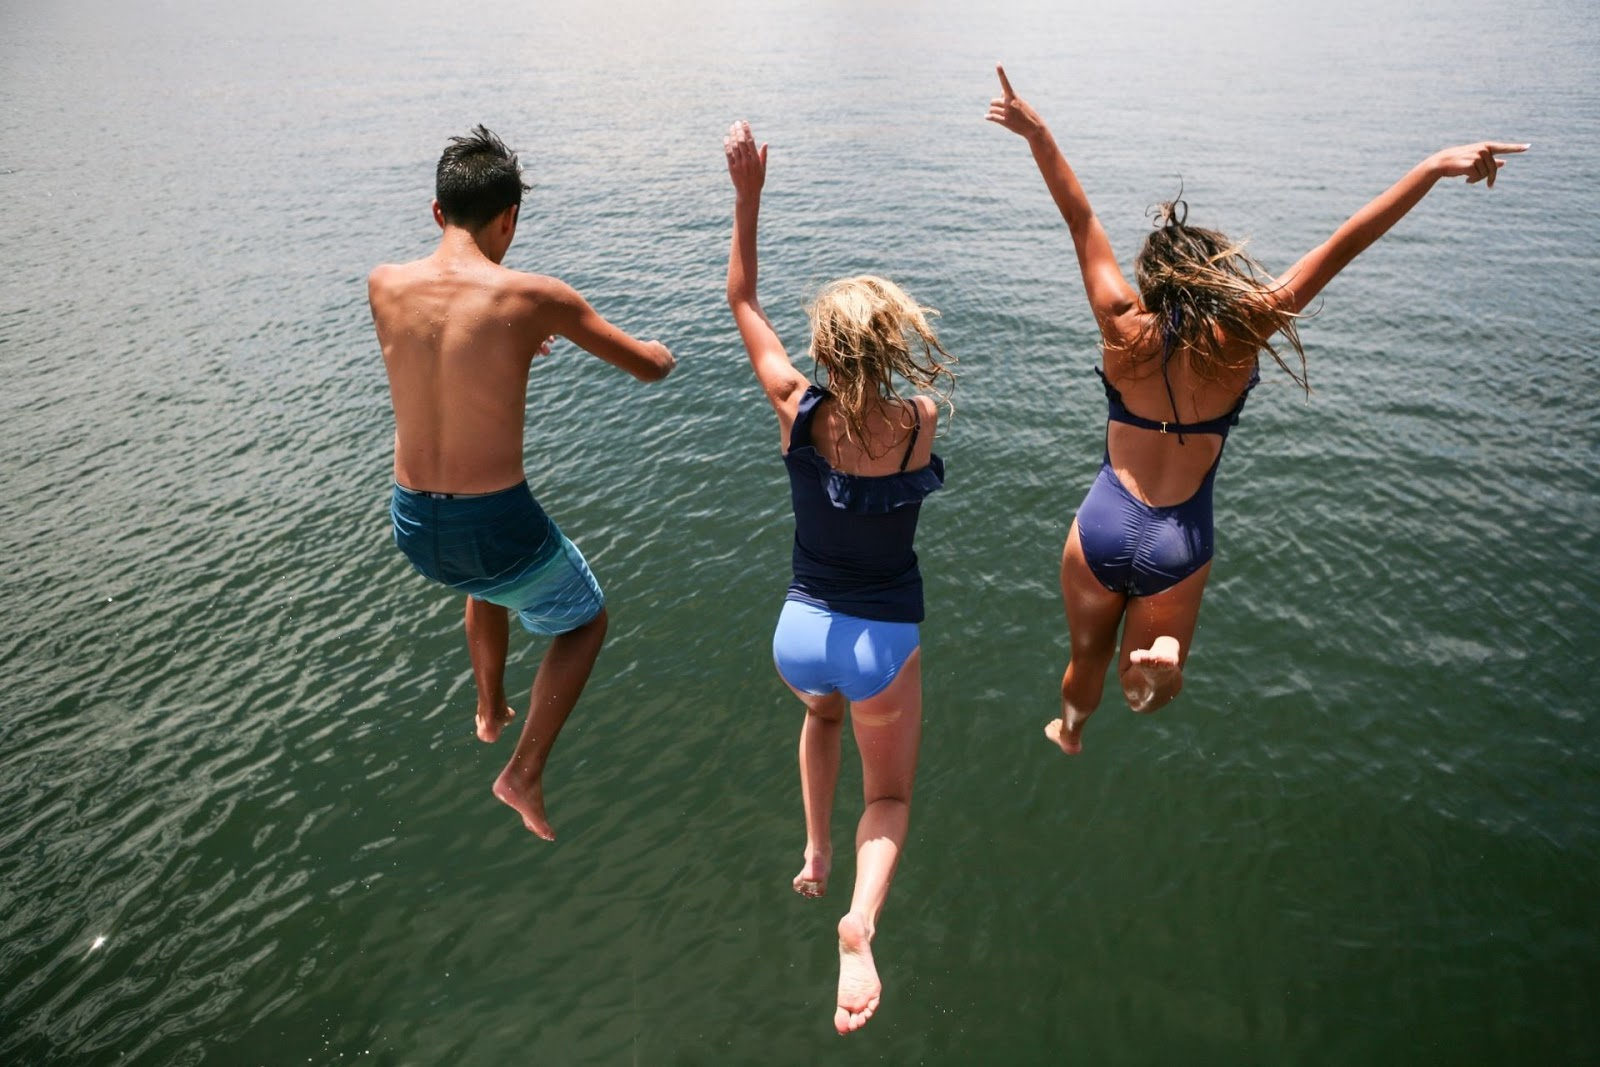 group of people jumping into water